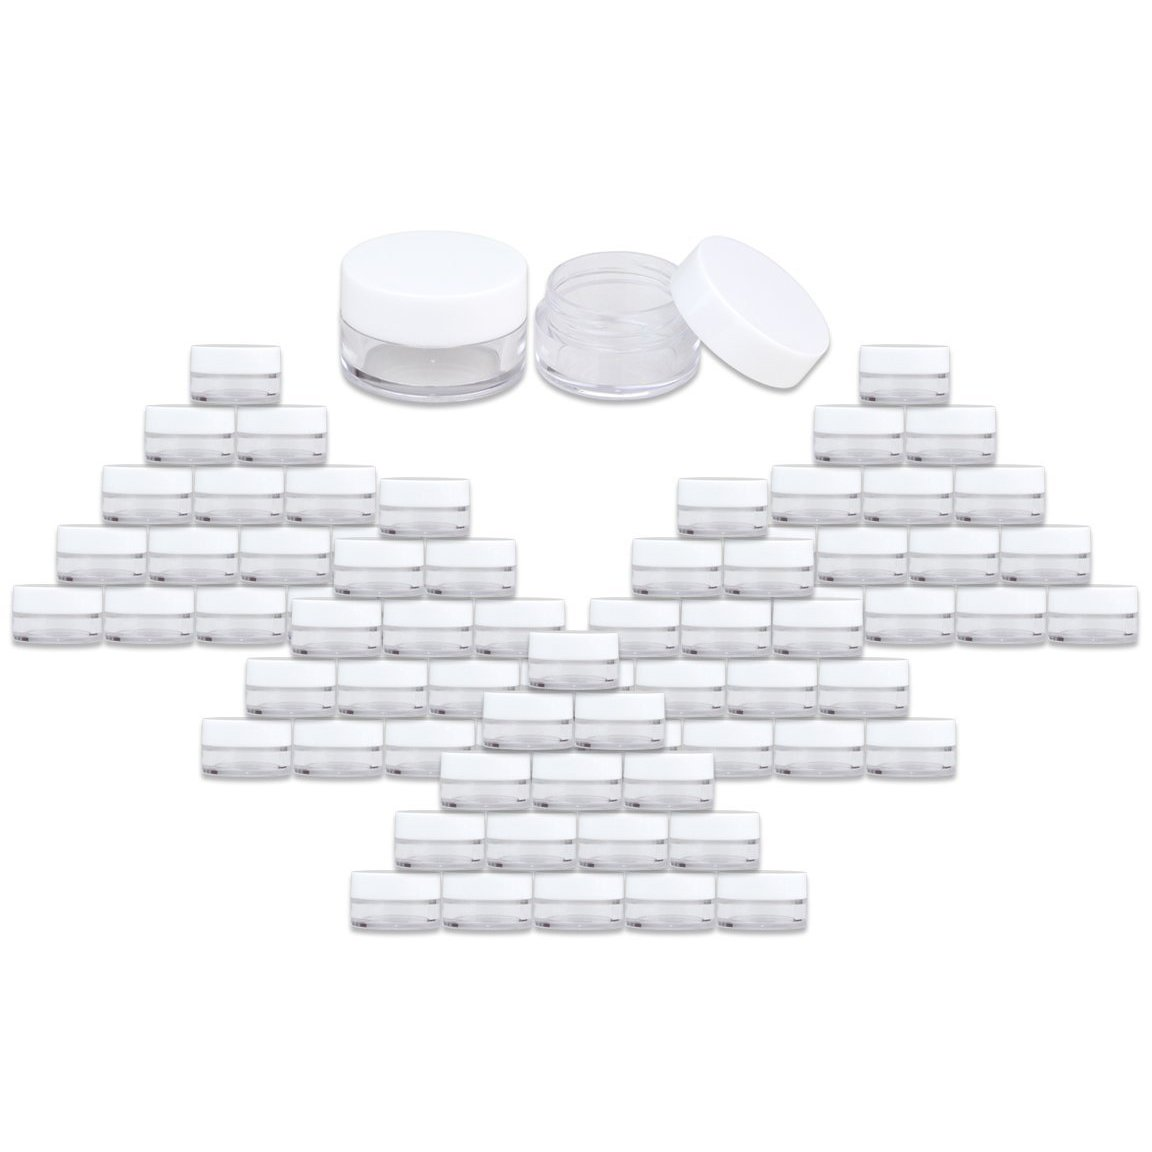 2400 Jars - Beauticom High-Graded 5 Grams/5 mL BPA Free Thick Clear Acrylic 100% NO LEAK Plastic Jars empty Container White Lid for Cosmetic, Lip Balm, Beads, Creams, Lotion, Liquids, Sample, Travel by Beauticom